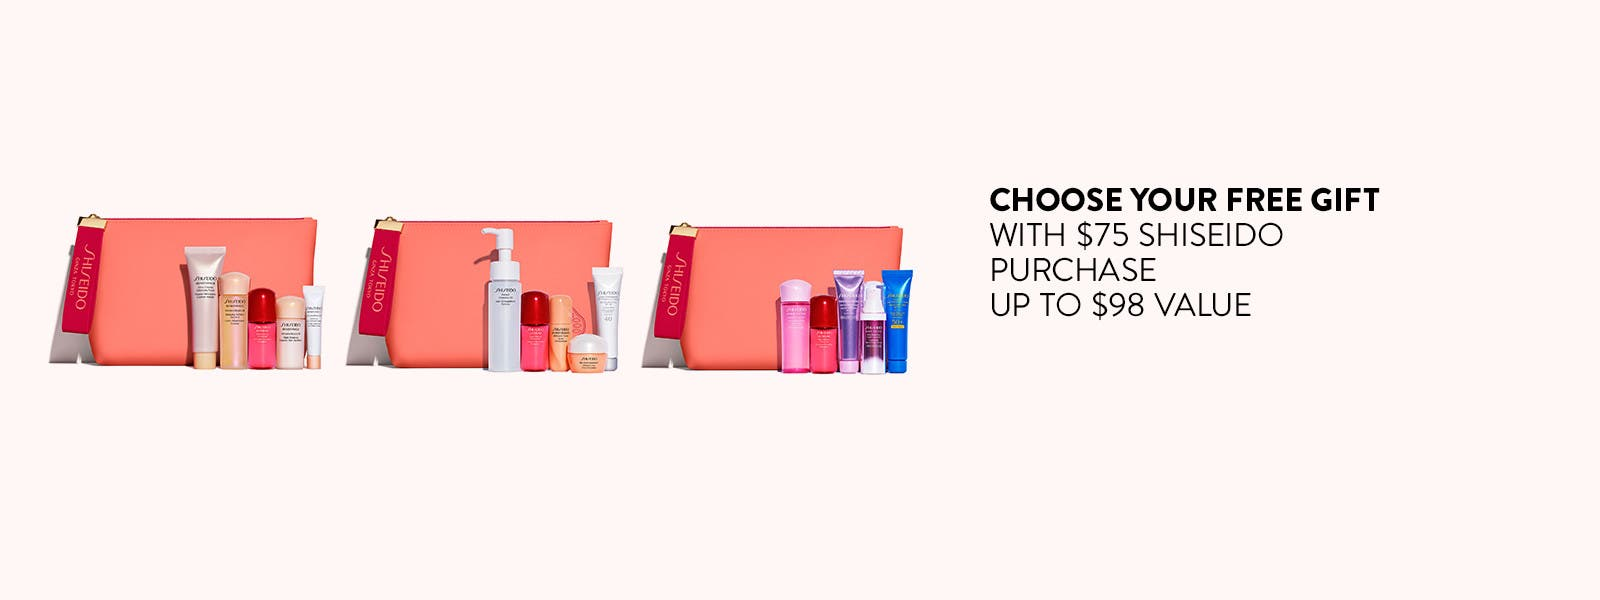 Choose your free gift with $75 Shiseido purchase. Up to $98 value.